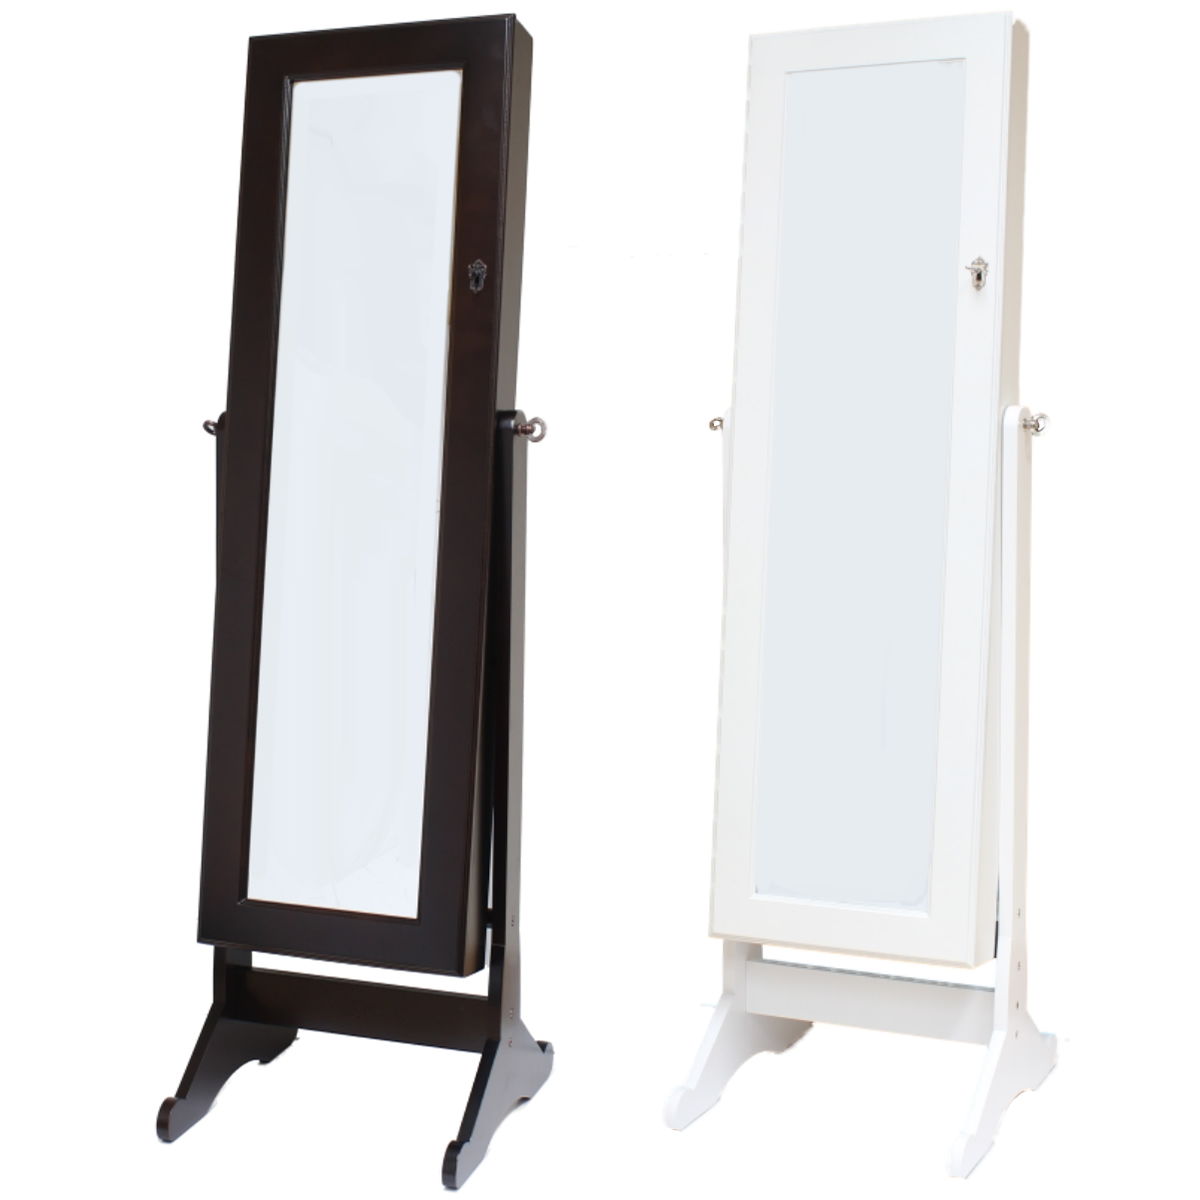 Bedroom Mirrors : LARGE FLOOR STANDING BEDROOM MIRROR JEWELLERY BOX/CABINET/ORGANISER ...